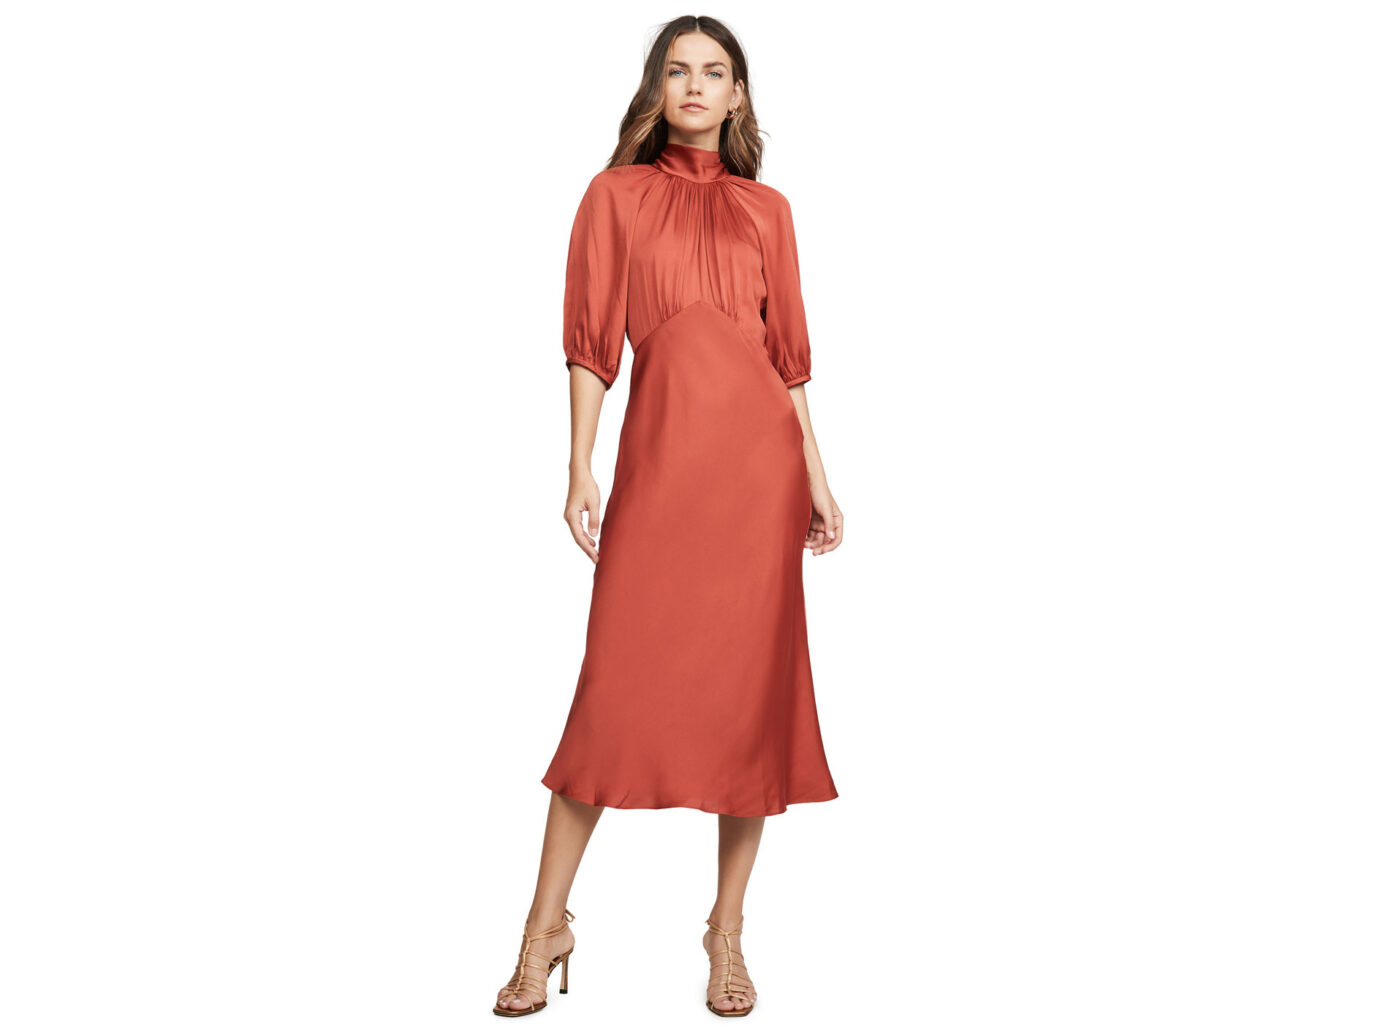 Rebecca Taylor Short Sleeve Satin Tye Dress